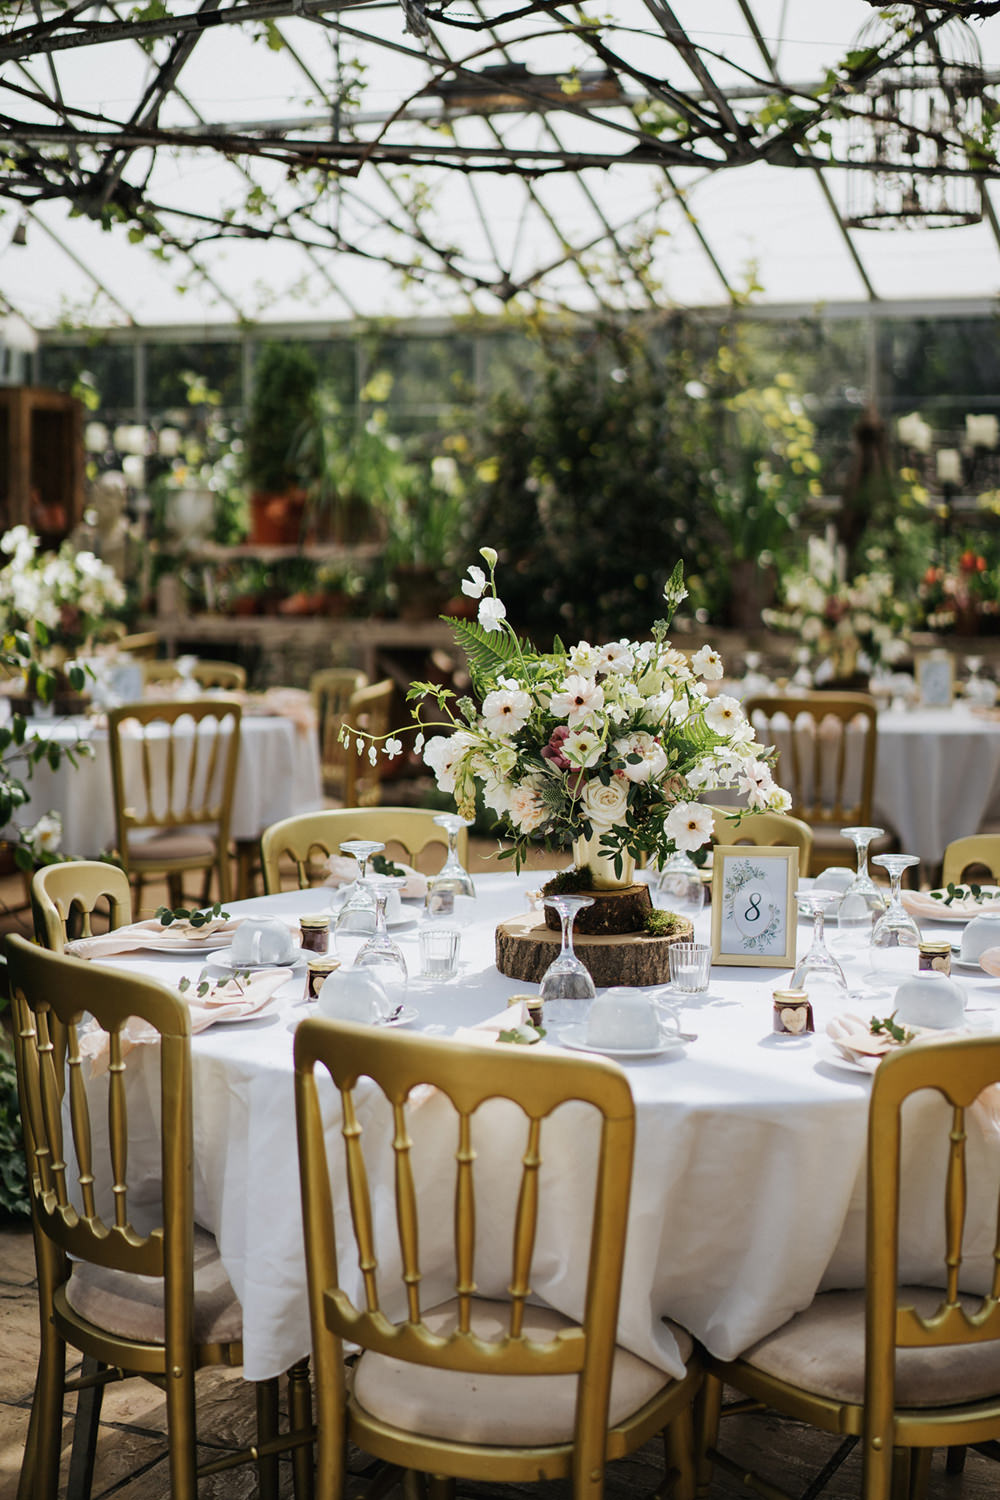 Round Tables Flowers Centrepiece Greenhouse Wedding Kit Myers Photography